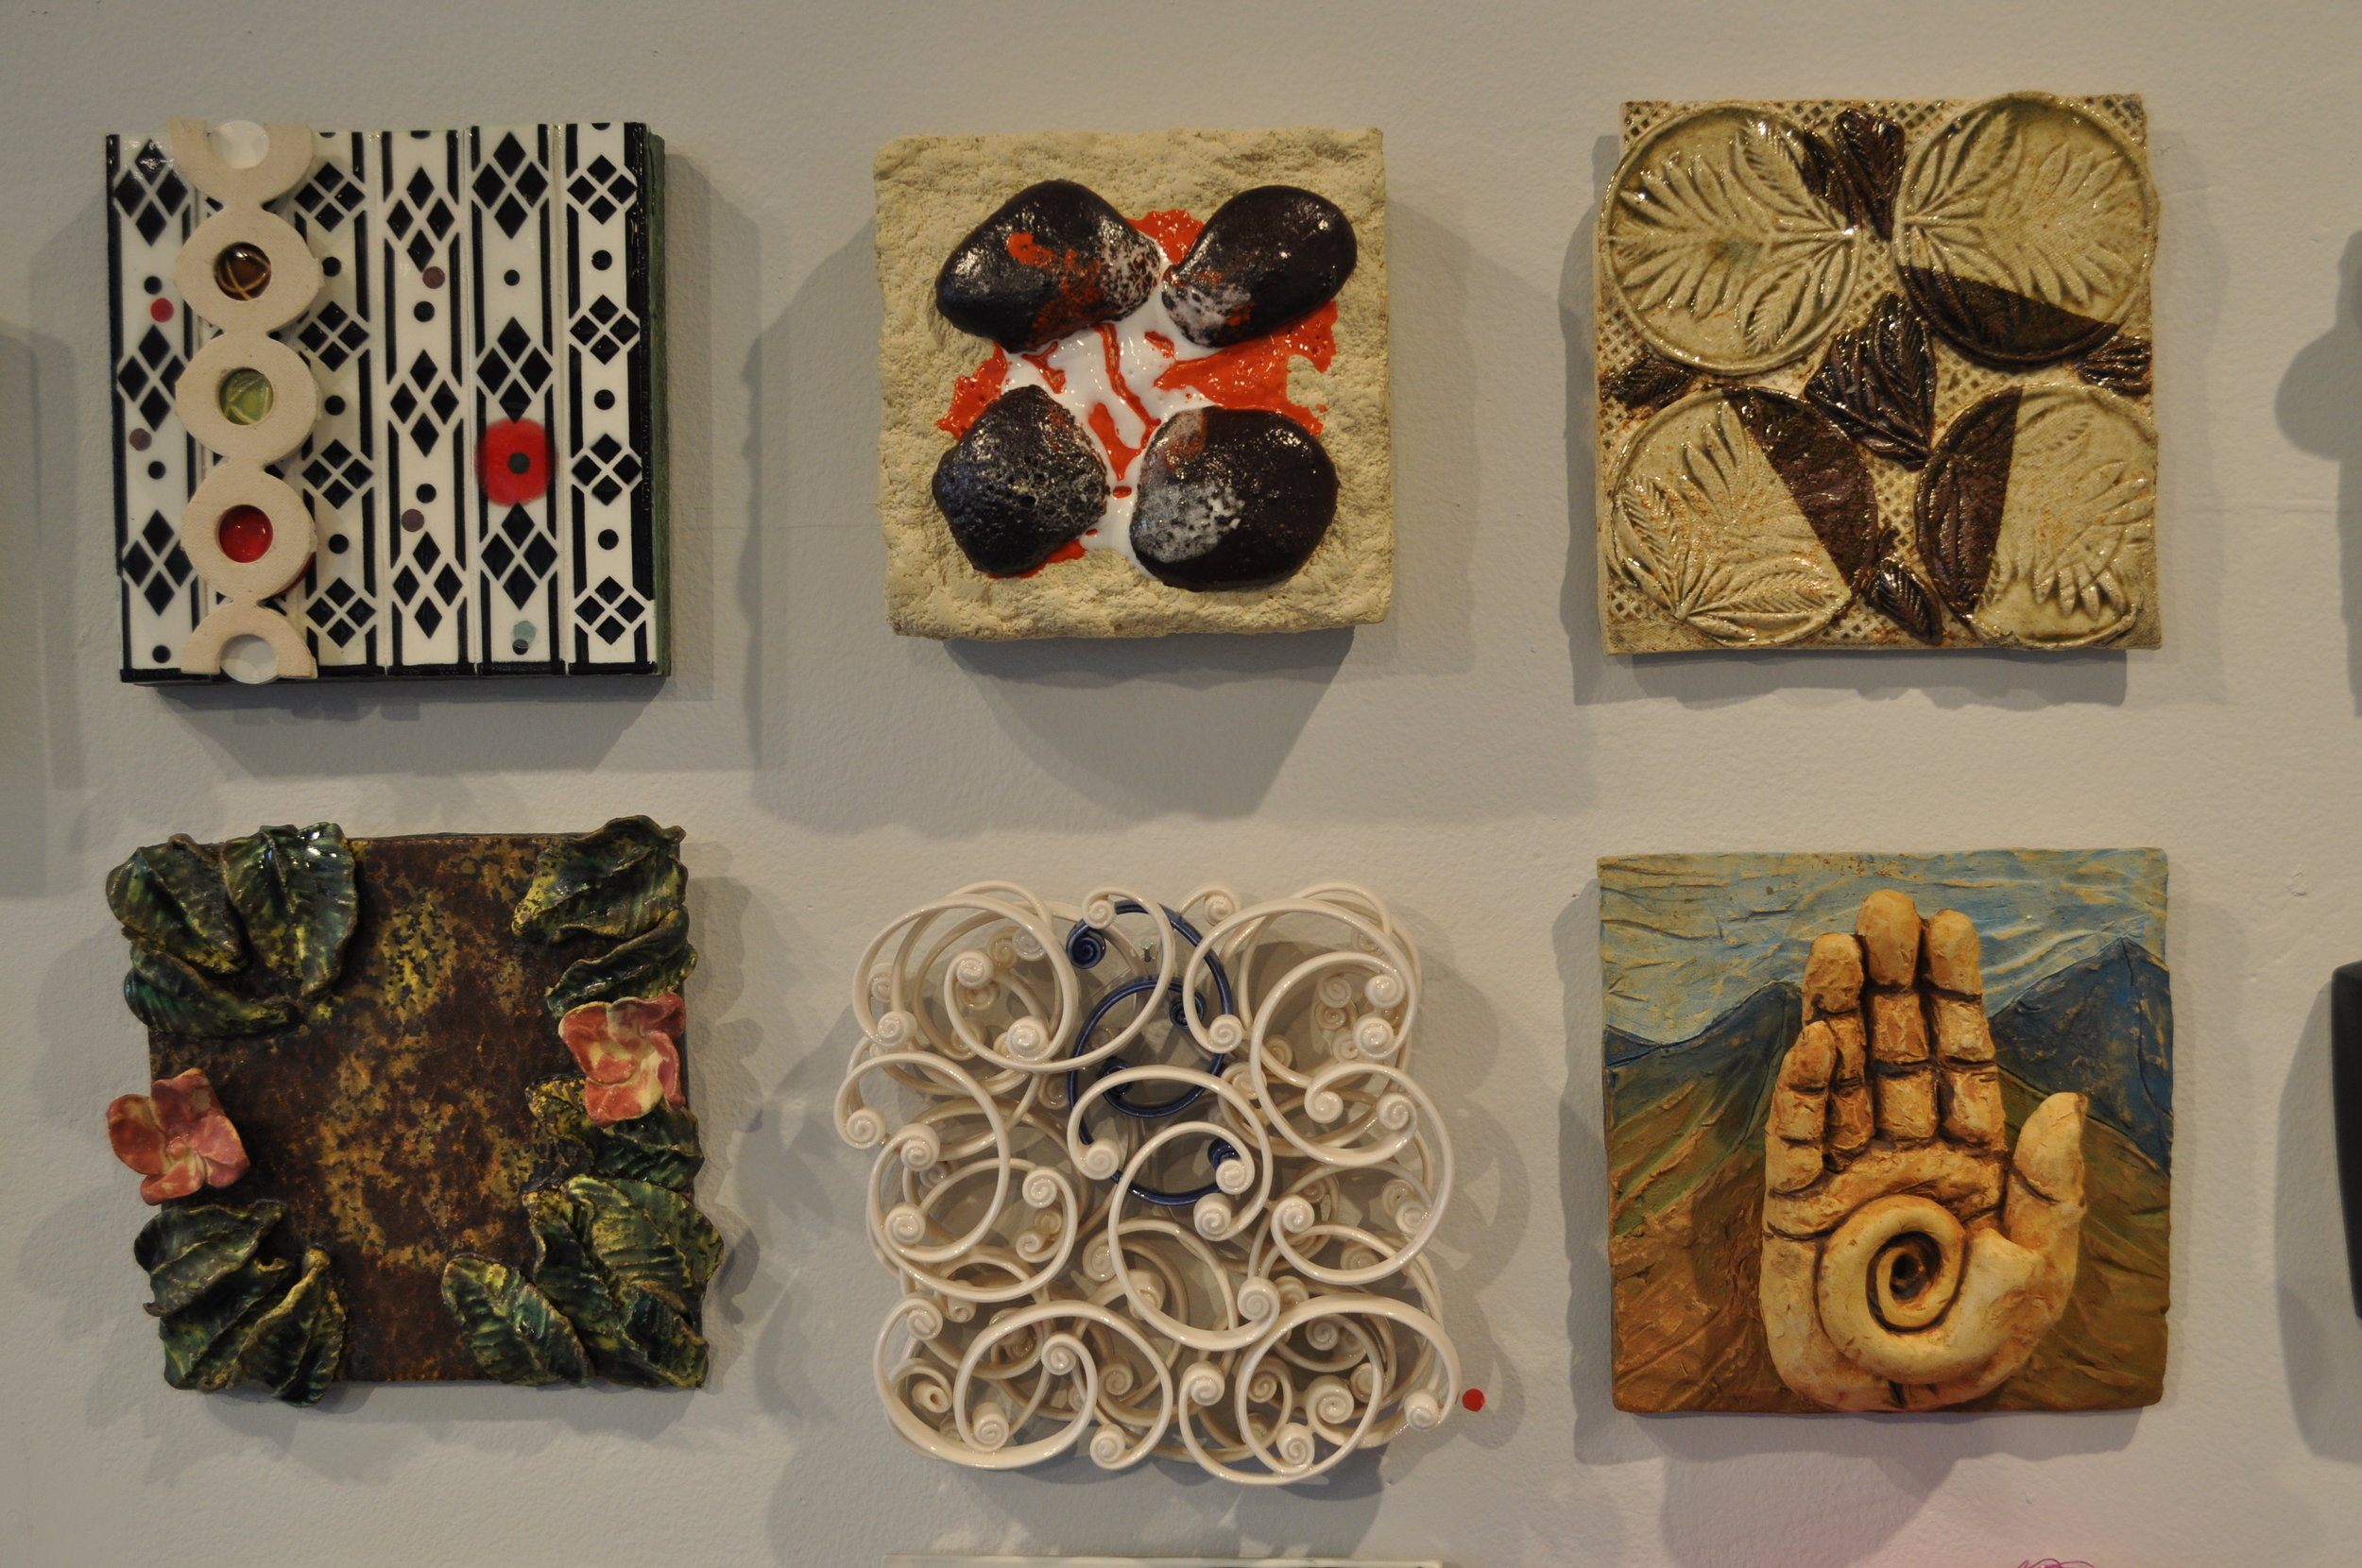 1.  Susan Tunick,  Black Diamonds  $350  2.  Kitty Ross,  Lava  $250  3. Myra Bowie,  Circles in the square  $40  4. Lucy Breslin,  Tile 1  $80  5.  Michelle Tobia,  Untitled  SOLD  6.  Grace Fraioli,  Journey 1  $600